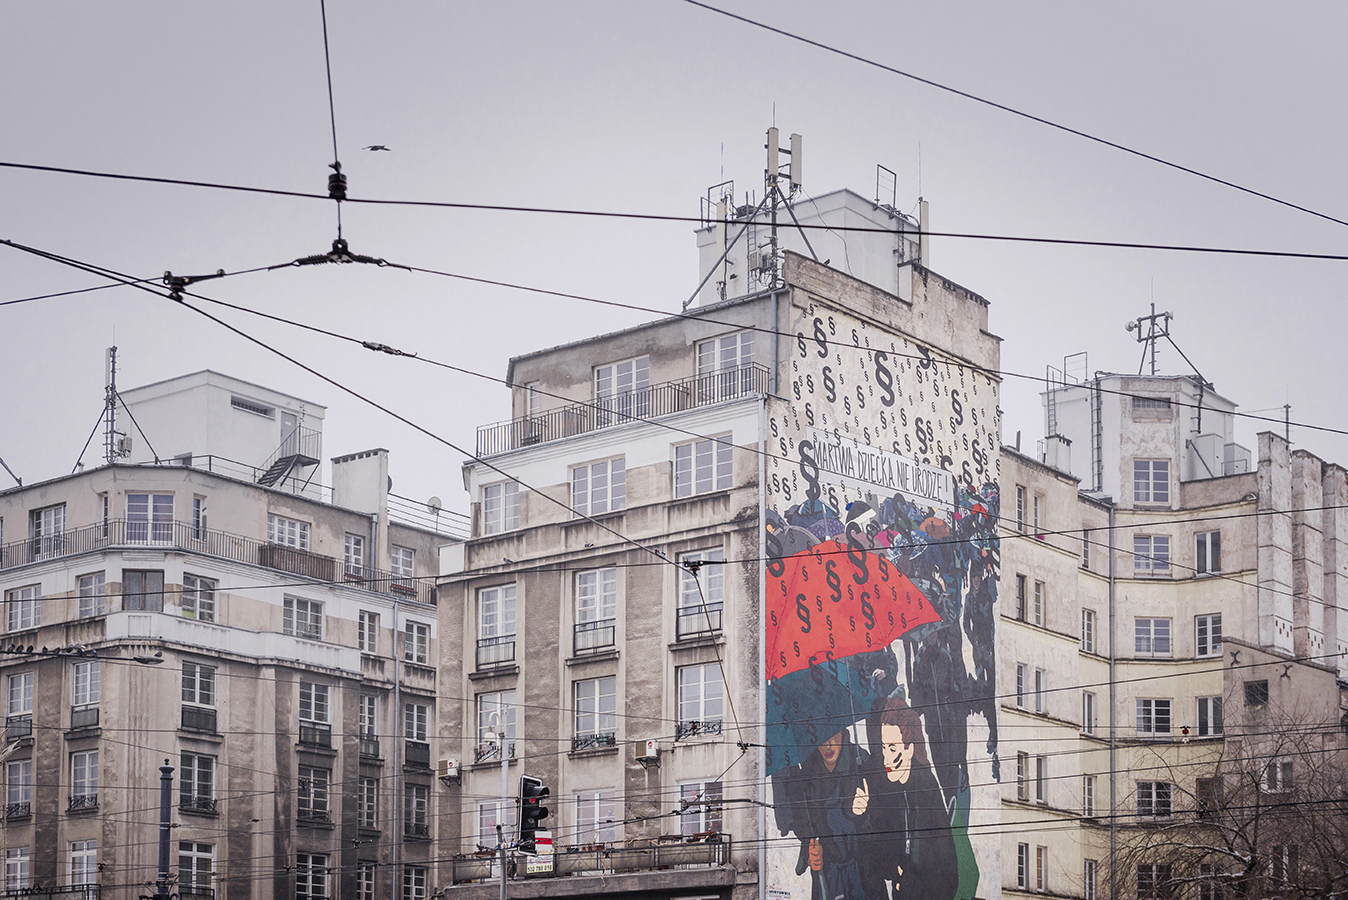 A street art painting designed by Marta Frej, a socially engaged illustrator, was painted in the centre of Warsaw to commemorate the Black Monday marches held in October 2016. More than 100,000 people protested against the tightening up of the anti-abortion law in Poland. Warsaw, January 2017